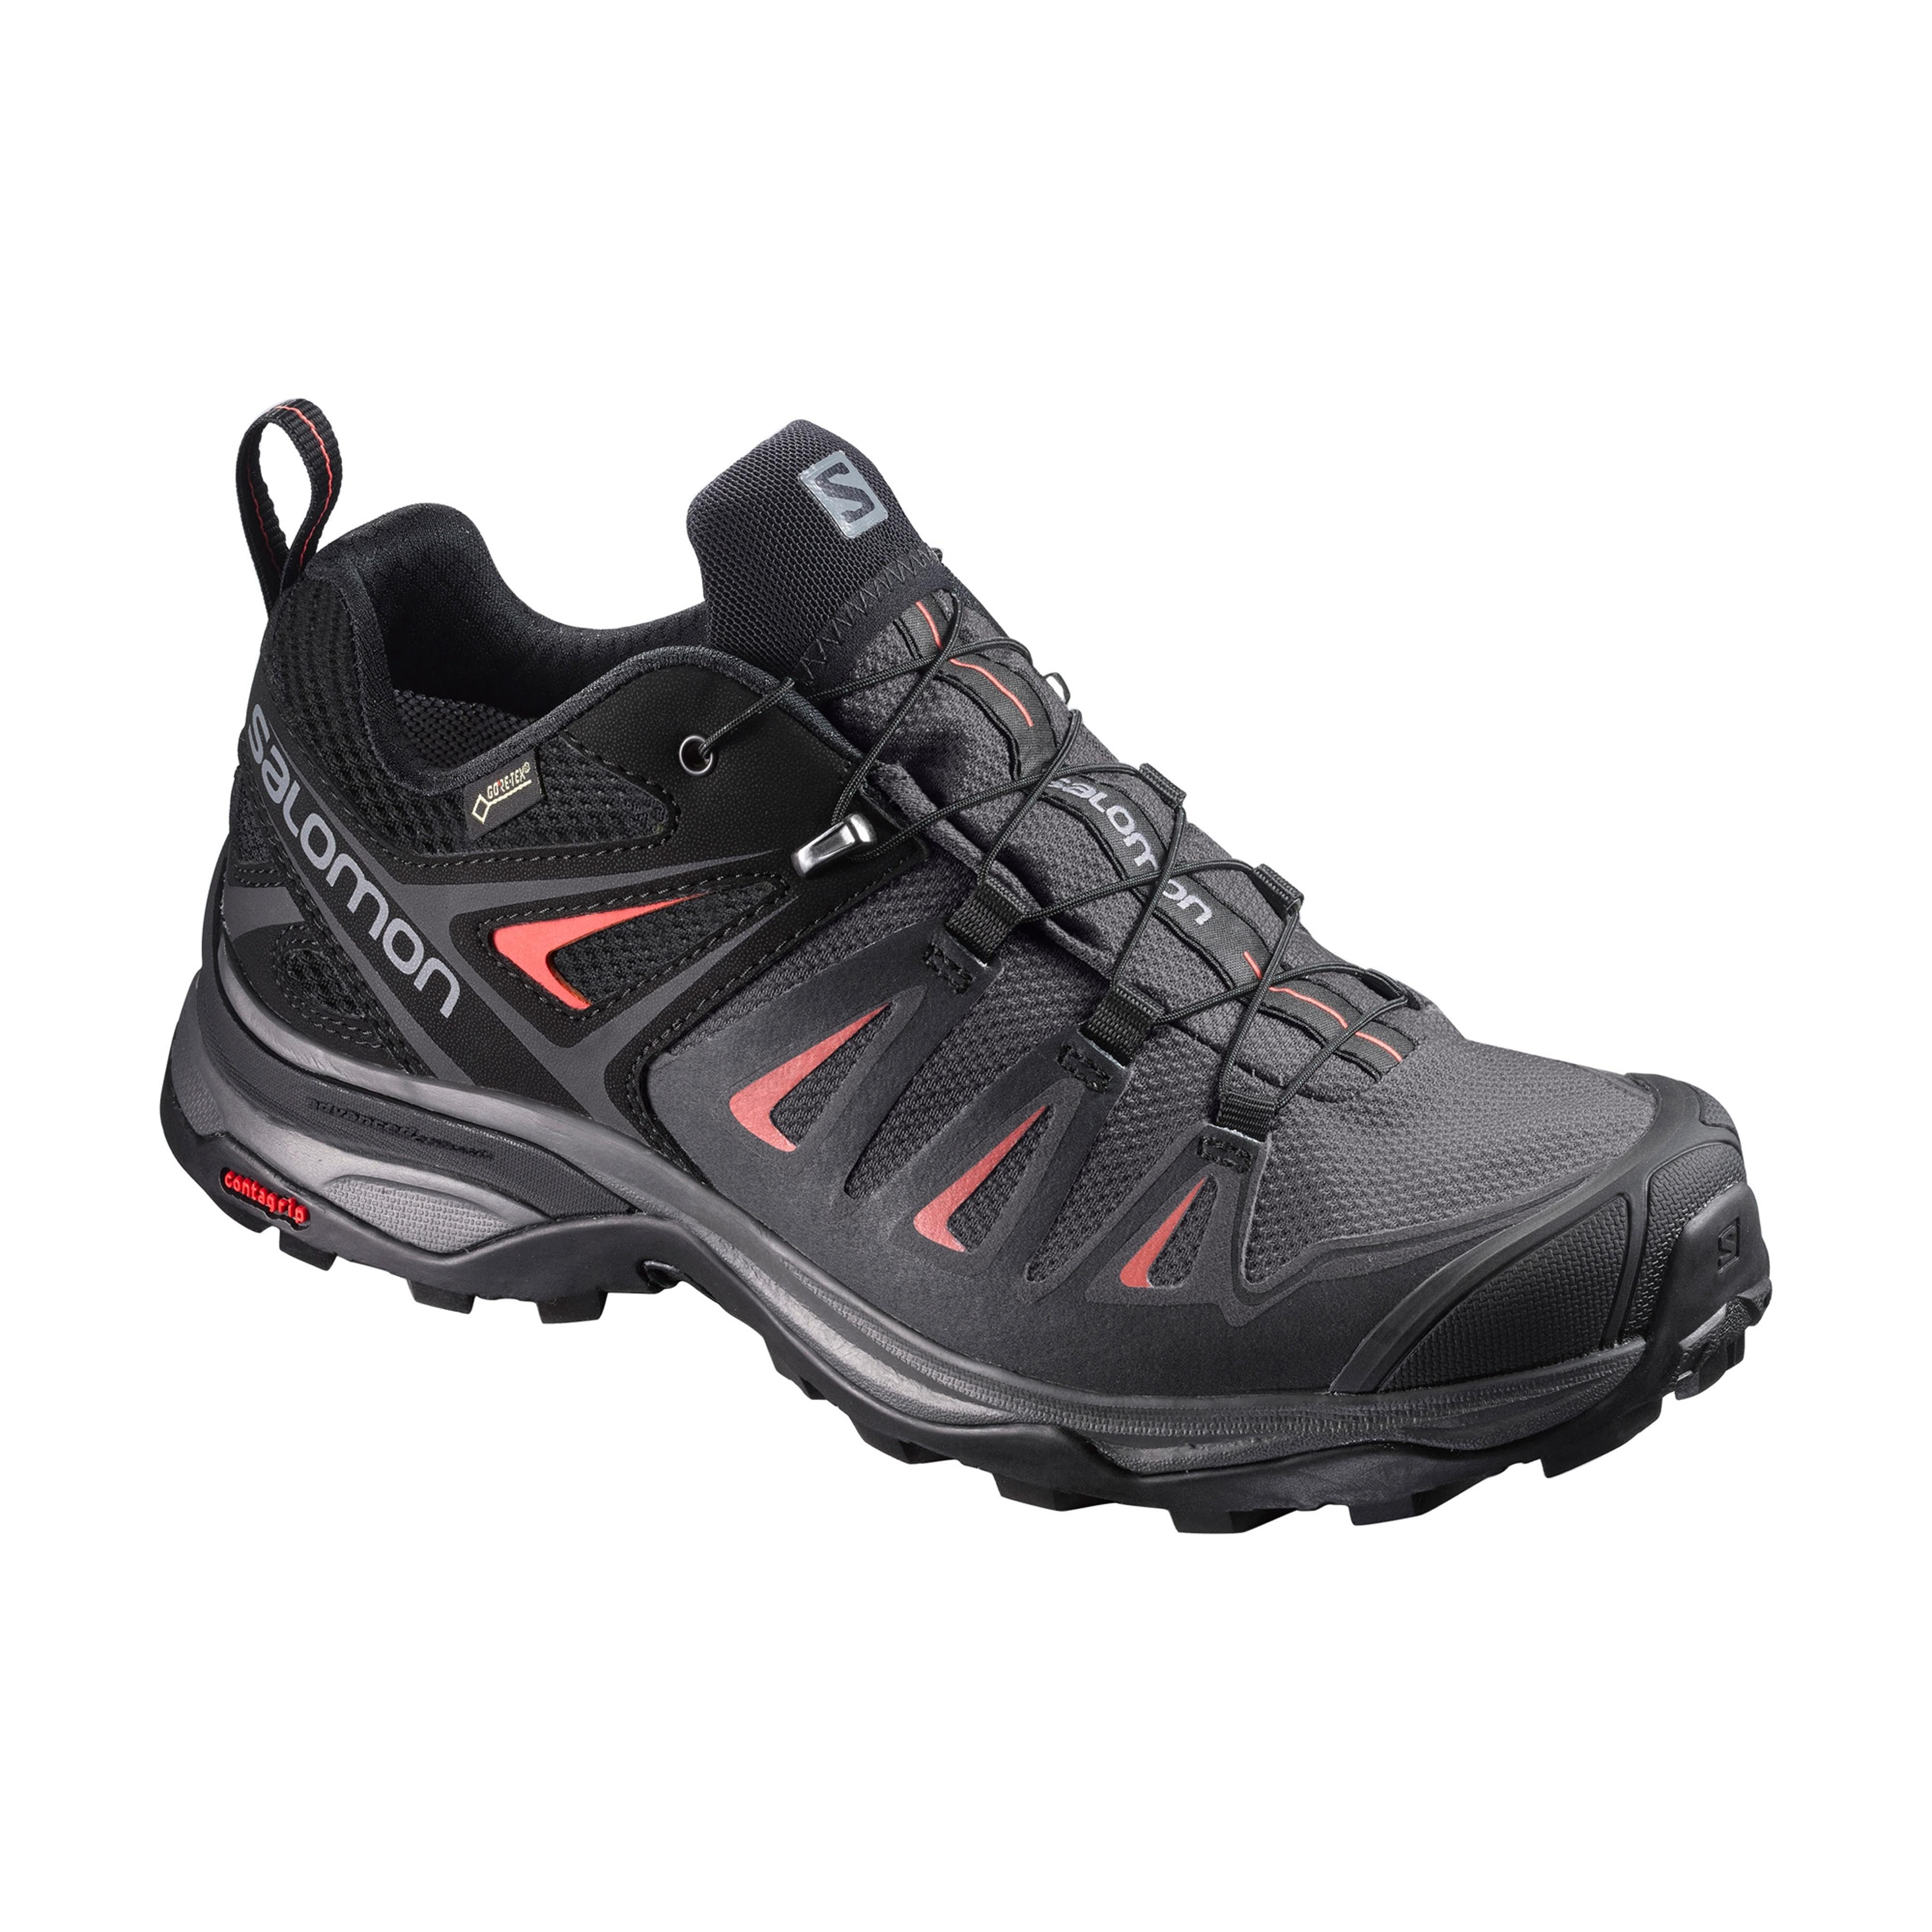 89f7bf515a83d4 Salomon X Ultra 3 Women s GORE-TEX Shoes